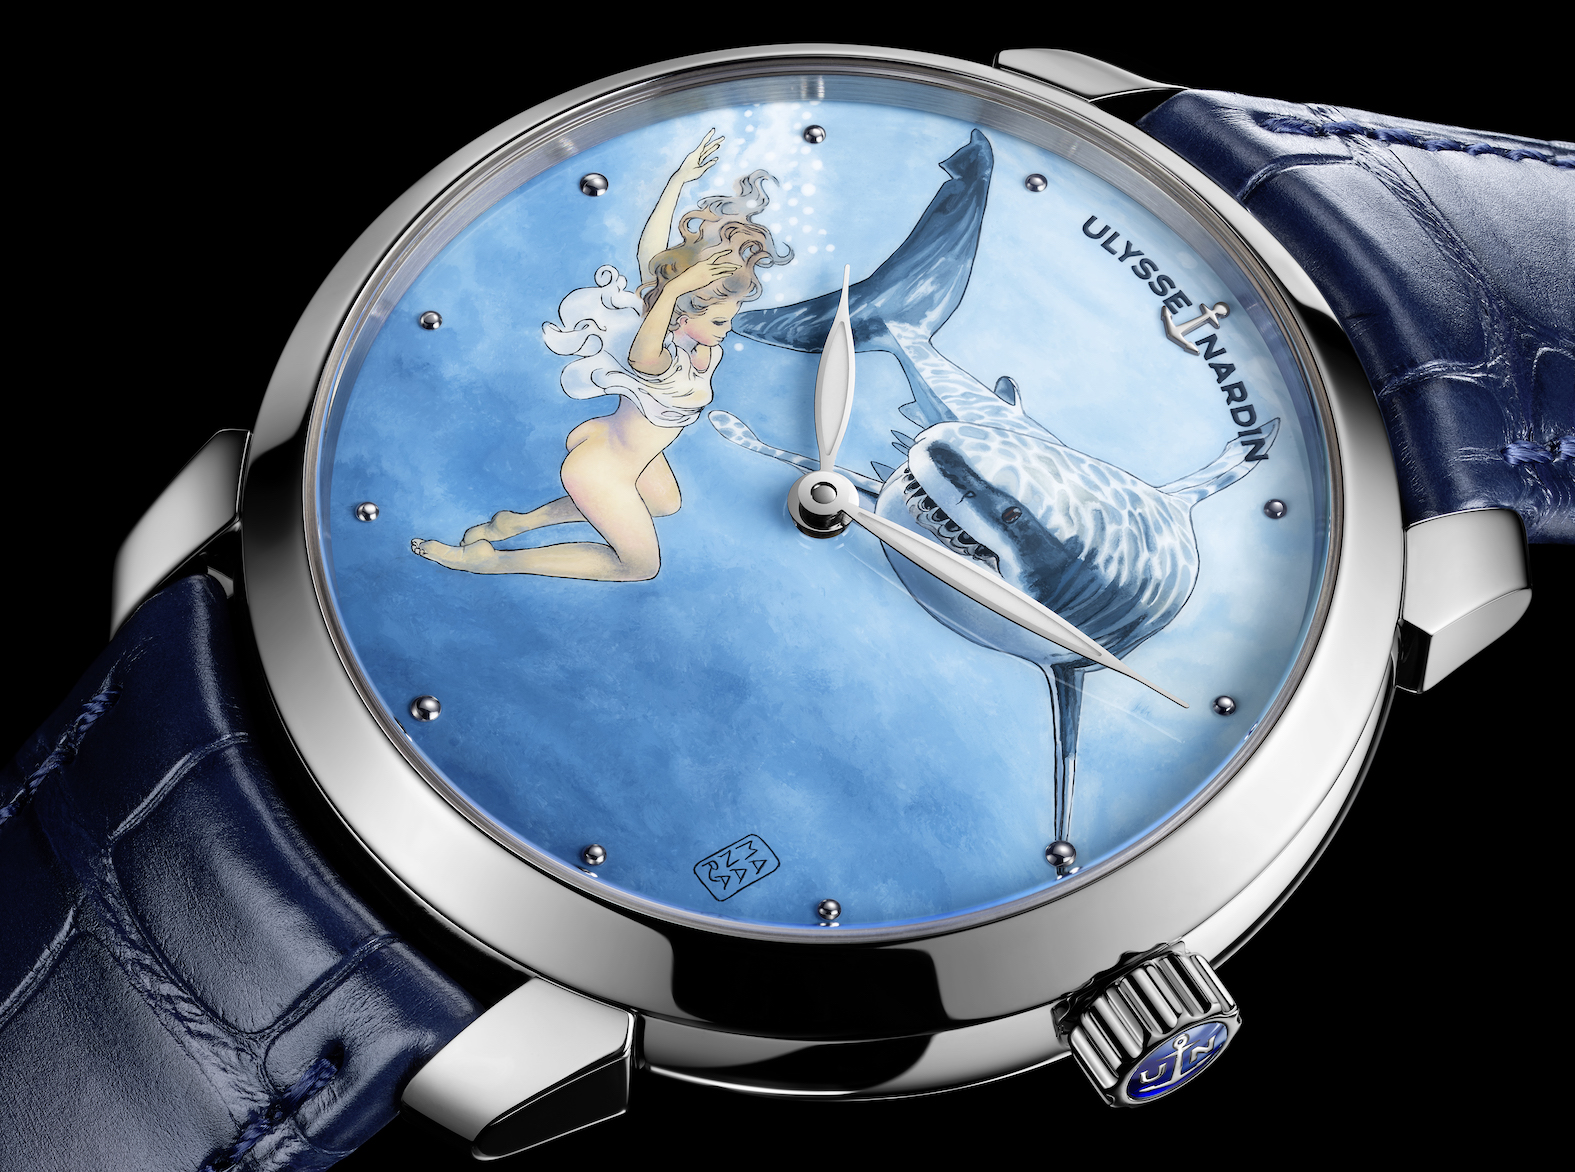 Ulysse Nardin Classico Manera erotic watch.